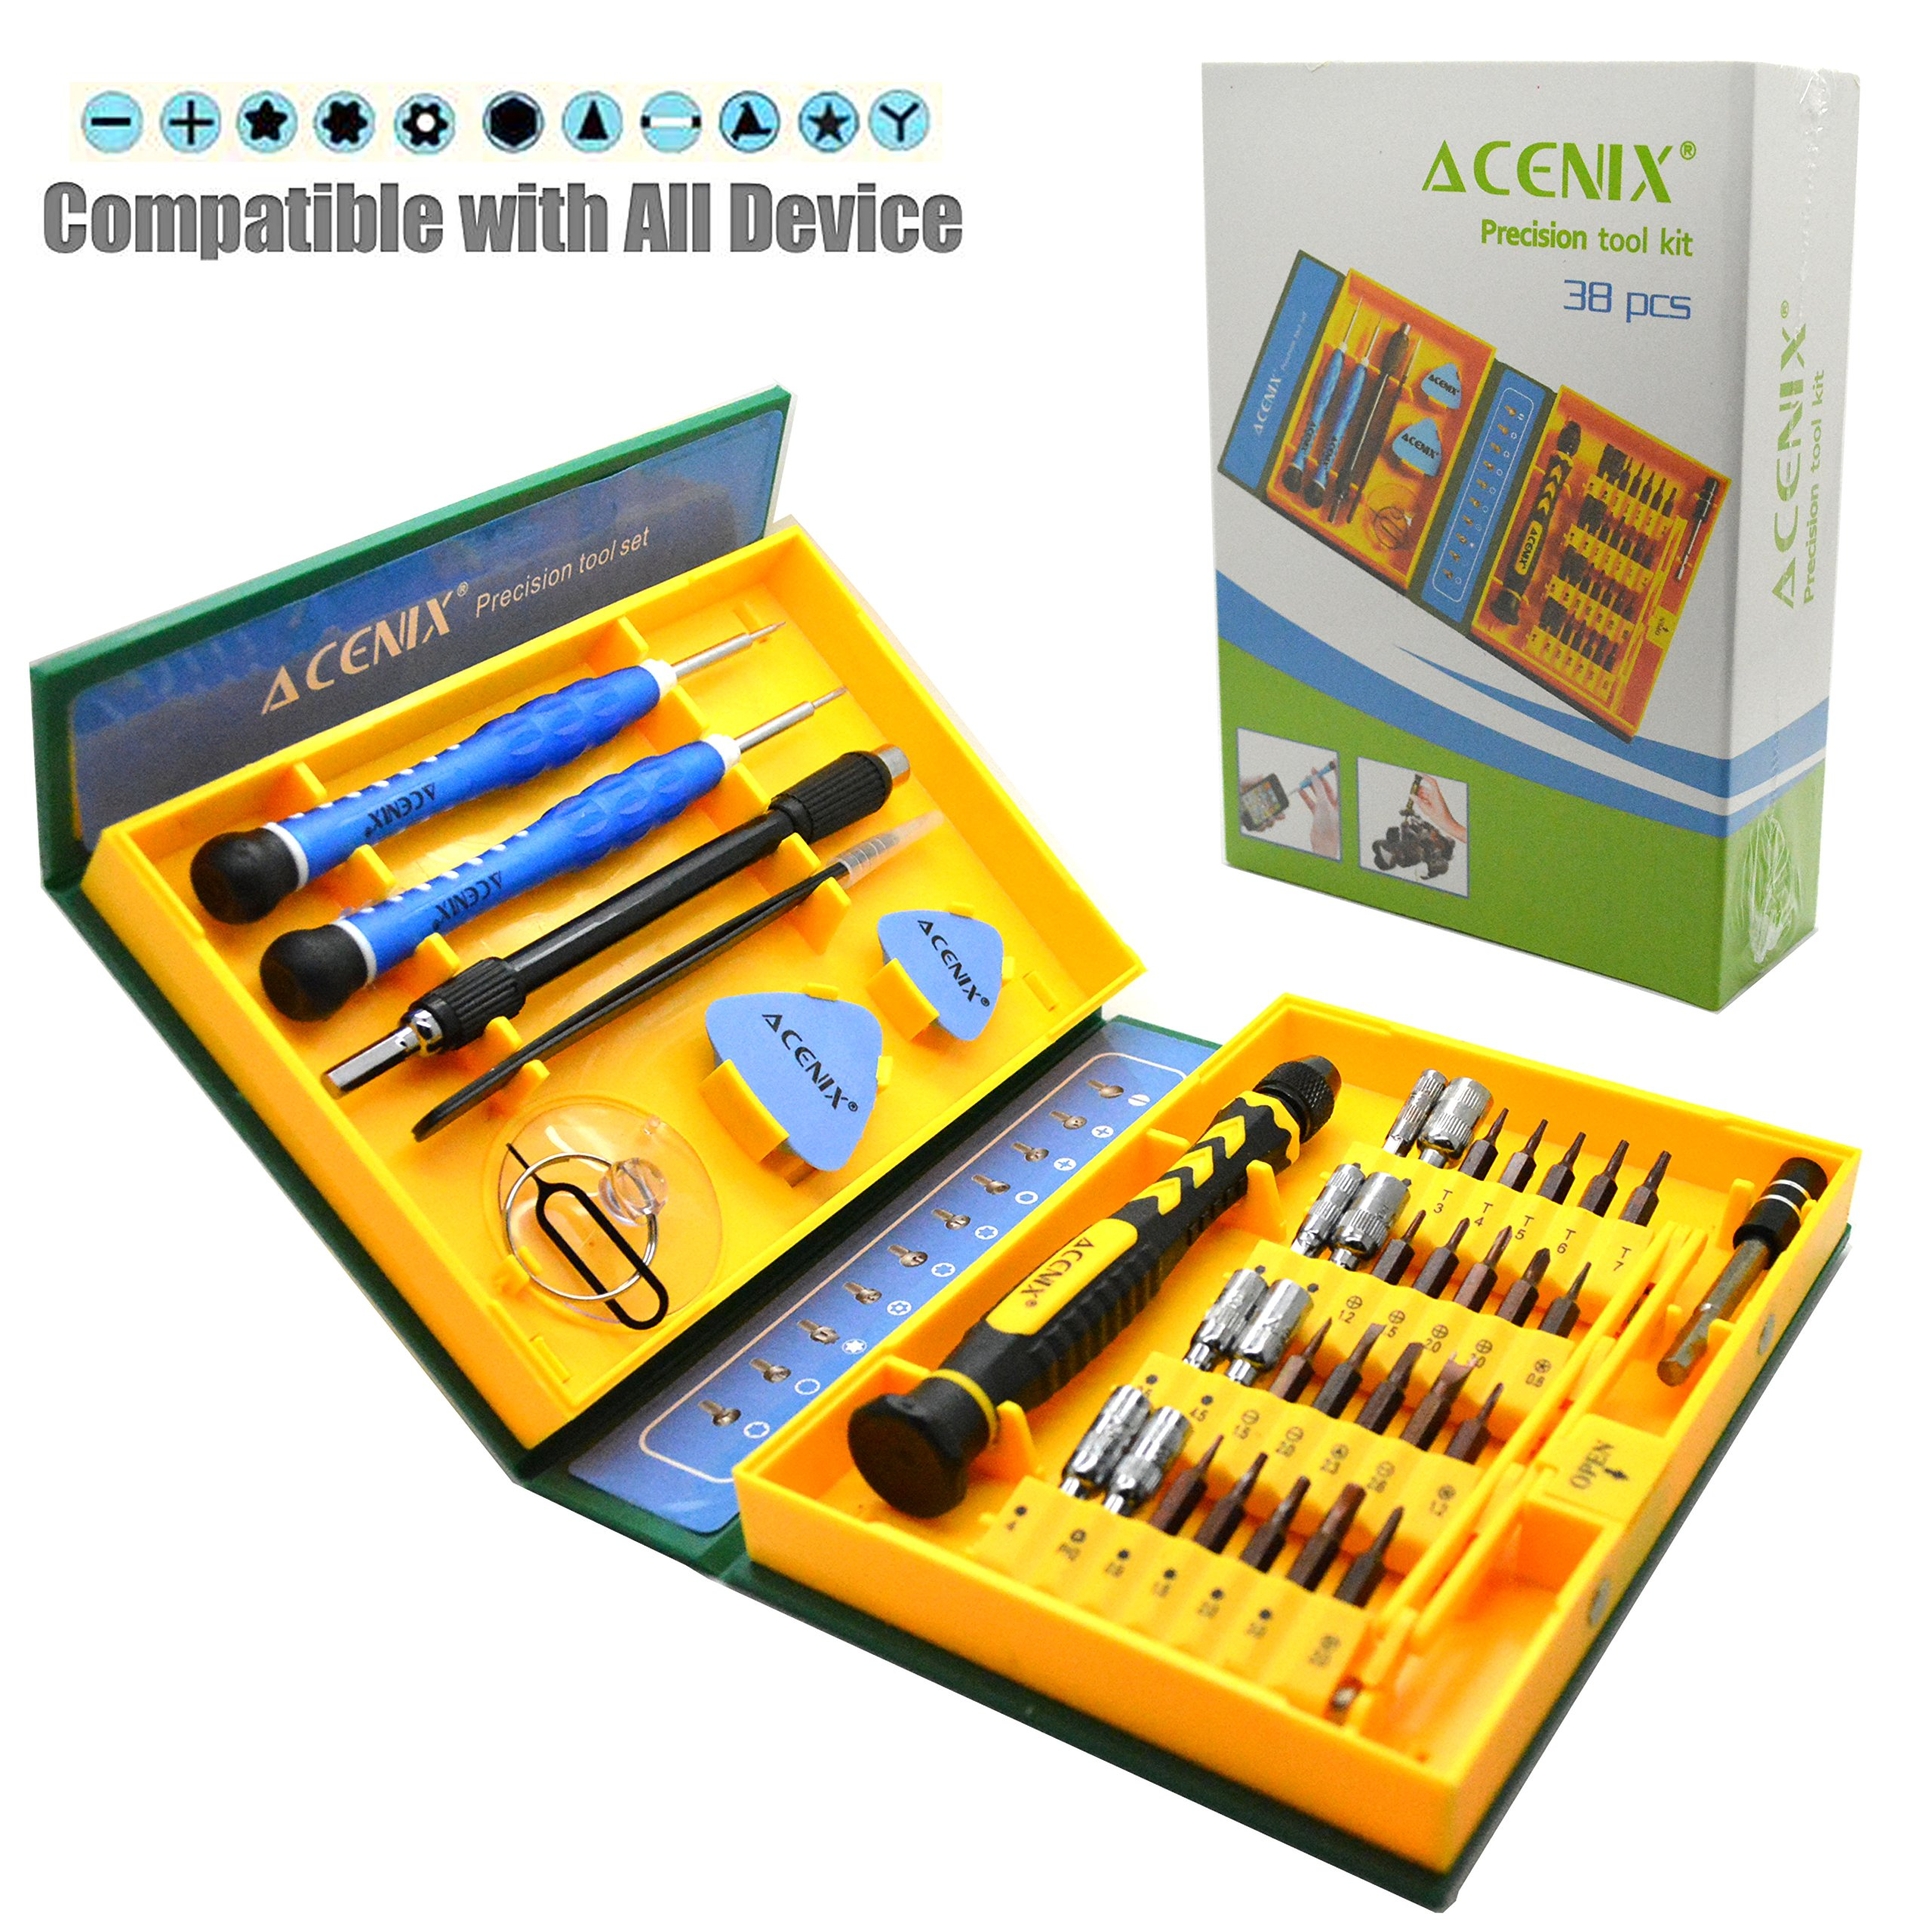 ACENIX 38 PCS Professional Tools Set for iPhone 7 Plus 7 6s Plus 6 Plus 6s 6 5S 5C 5 4S 4 iPad Air iPad 4 3 2 Mini iPods Samsung Galaxy S7 S6 S5 S4 S3 S2 HTC Nokia For All Types Of Cell Phones